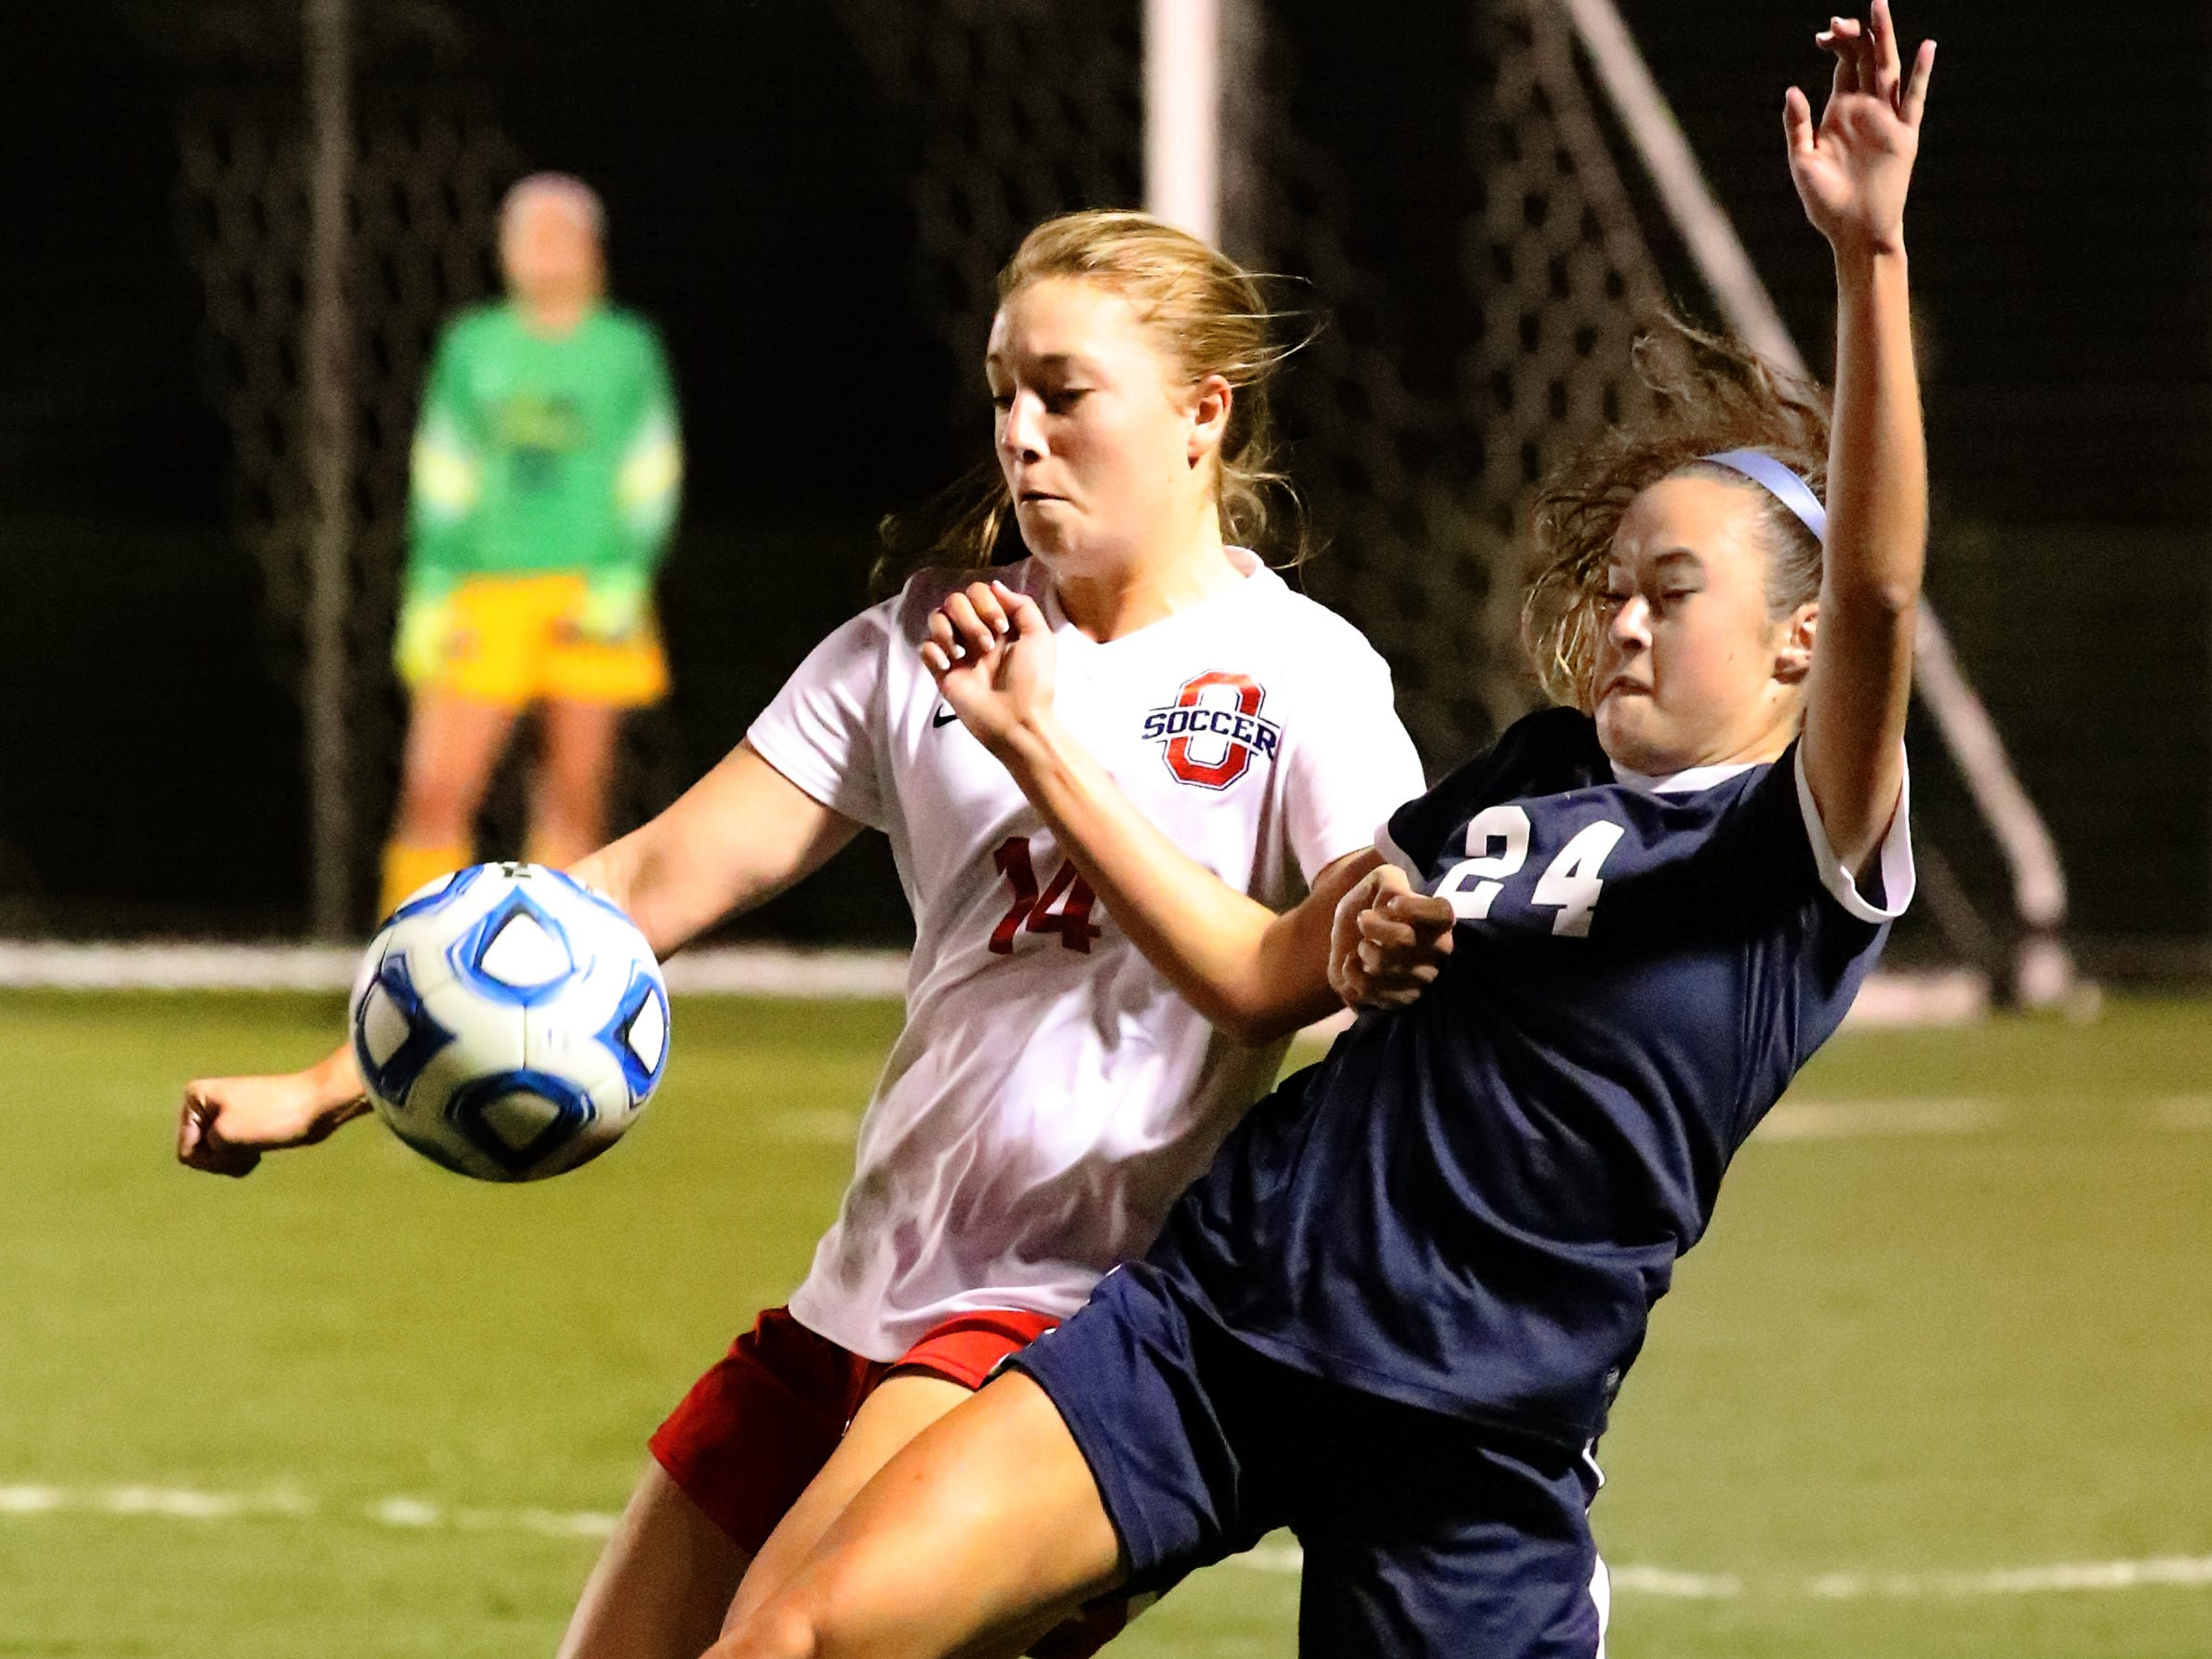 Oakland's Mary Grace Wright (14) and Siegel's Lexus Simpson (34) both go after the ball during the semifinals of the 7-AAA Soccer Tournament, on Tuesday,  Oct. 09, 2018 at the Siegel Soccer Complex.